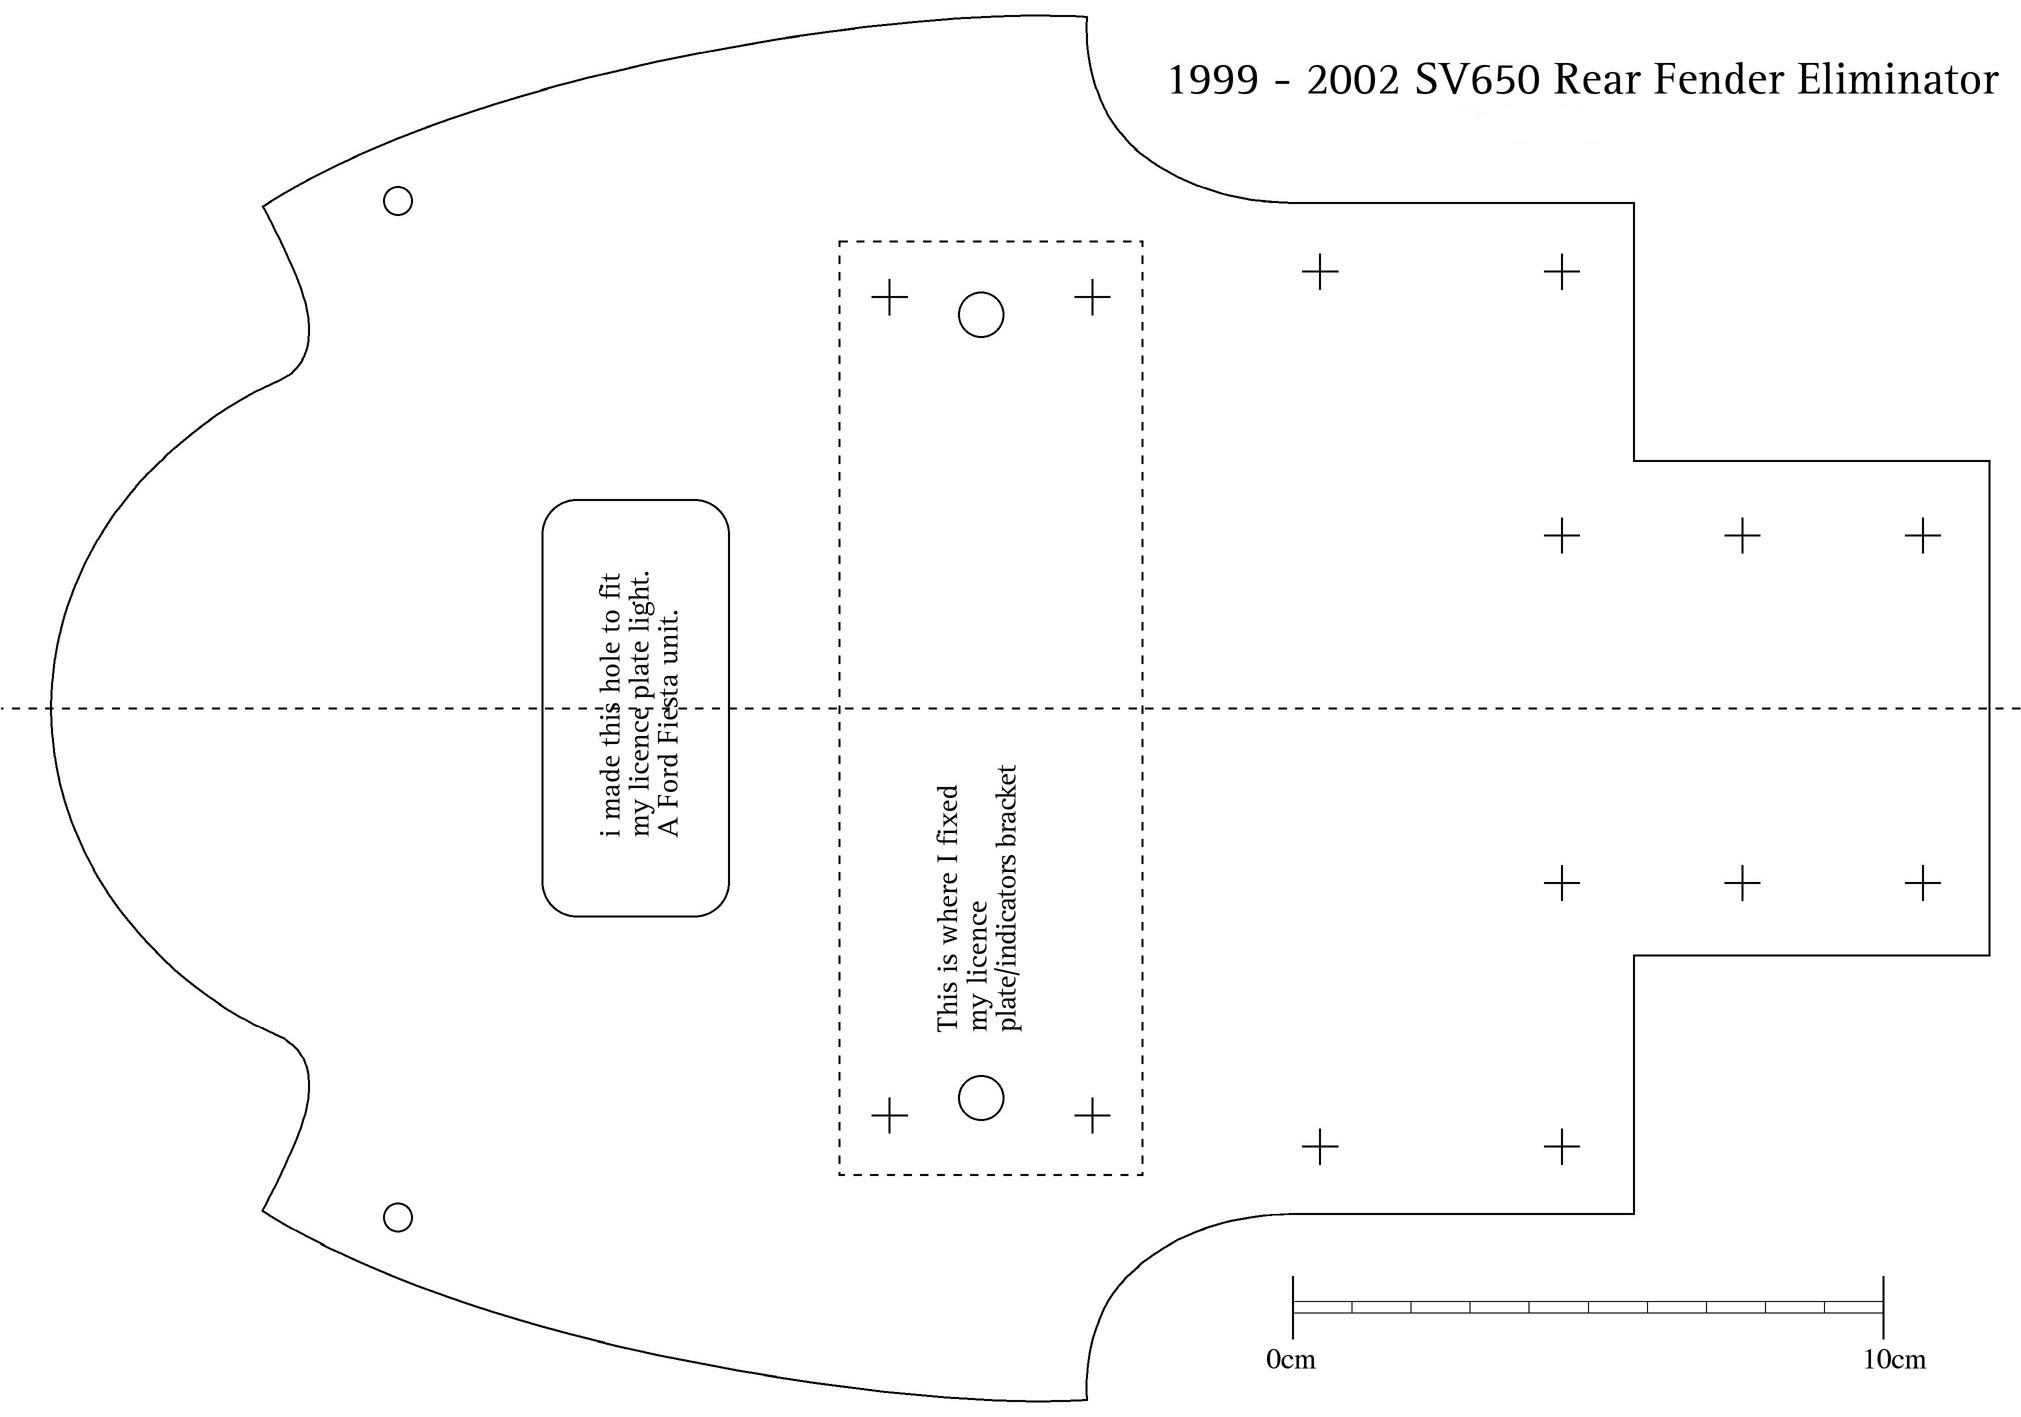 looking for a tail tidy template - sv650 org